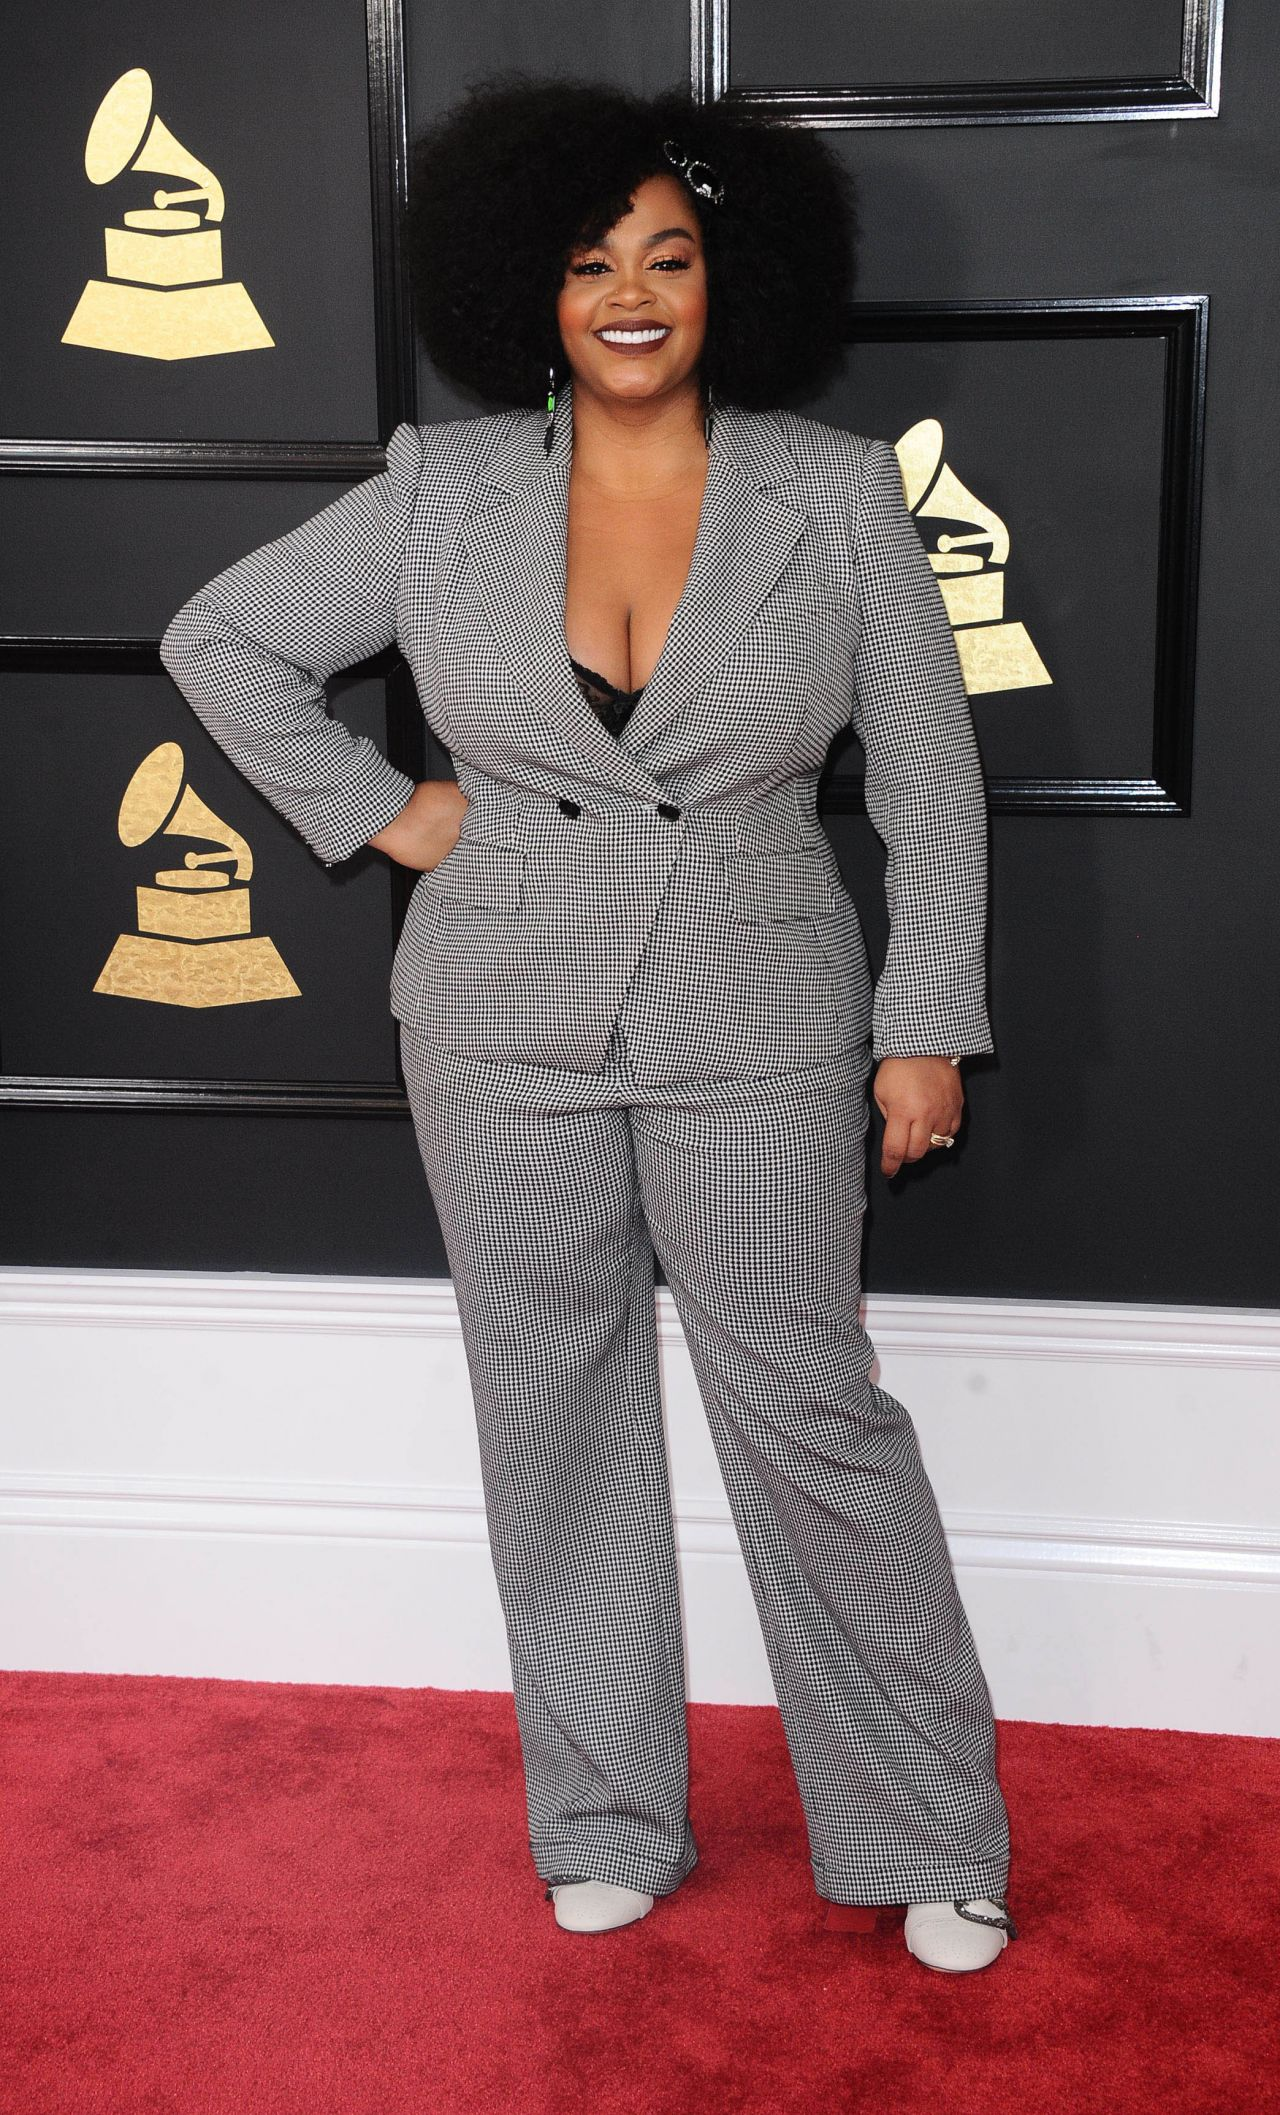 Jill Scott Jill Scott new photo